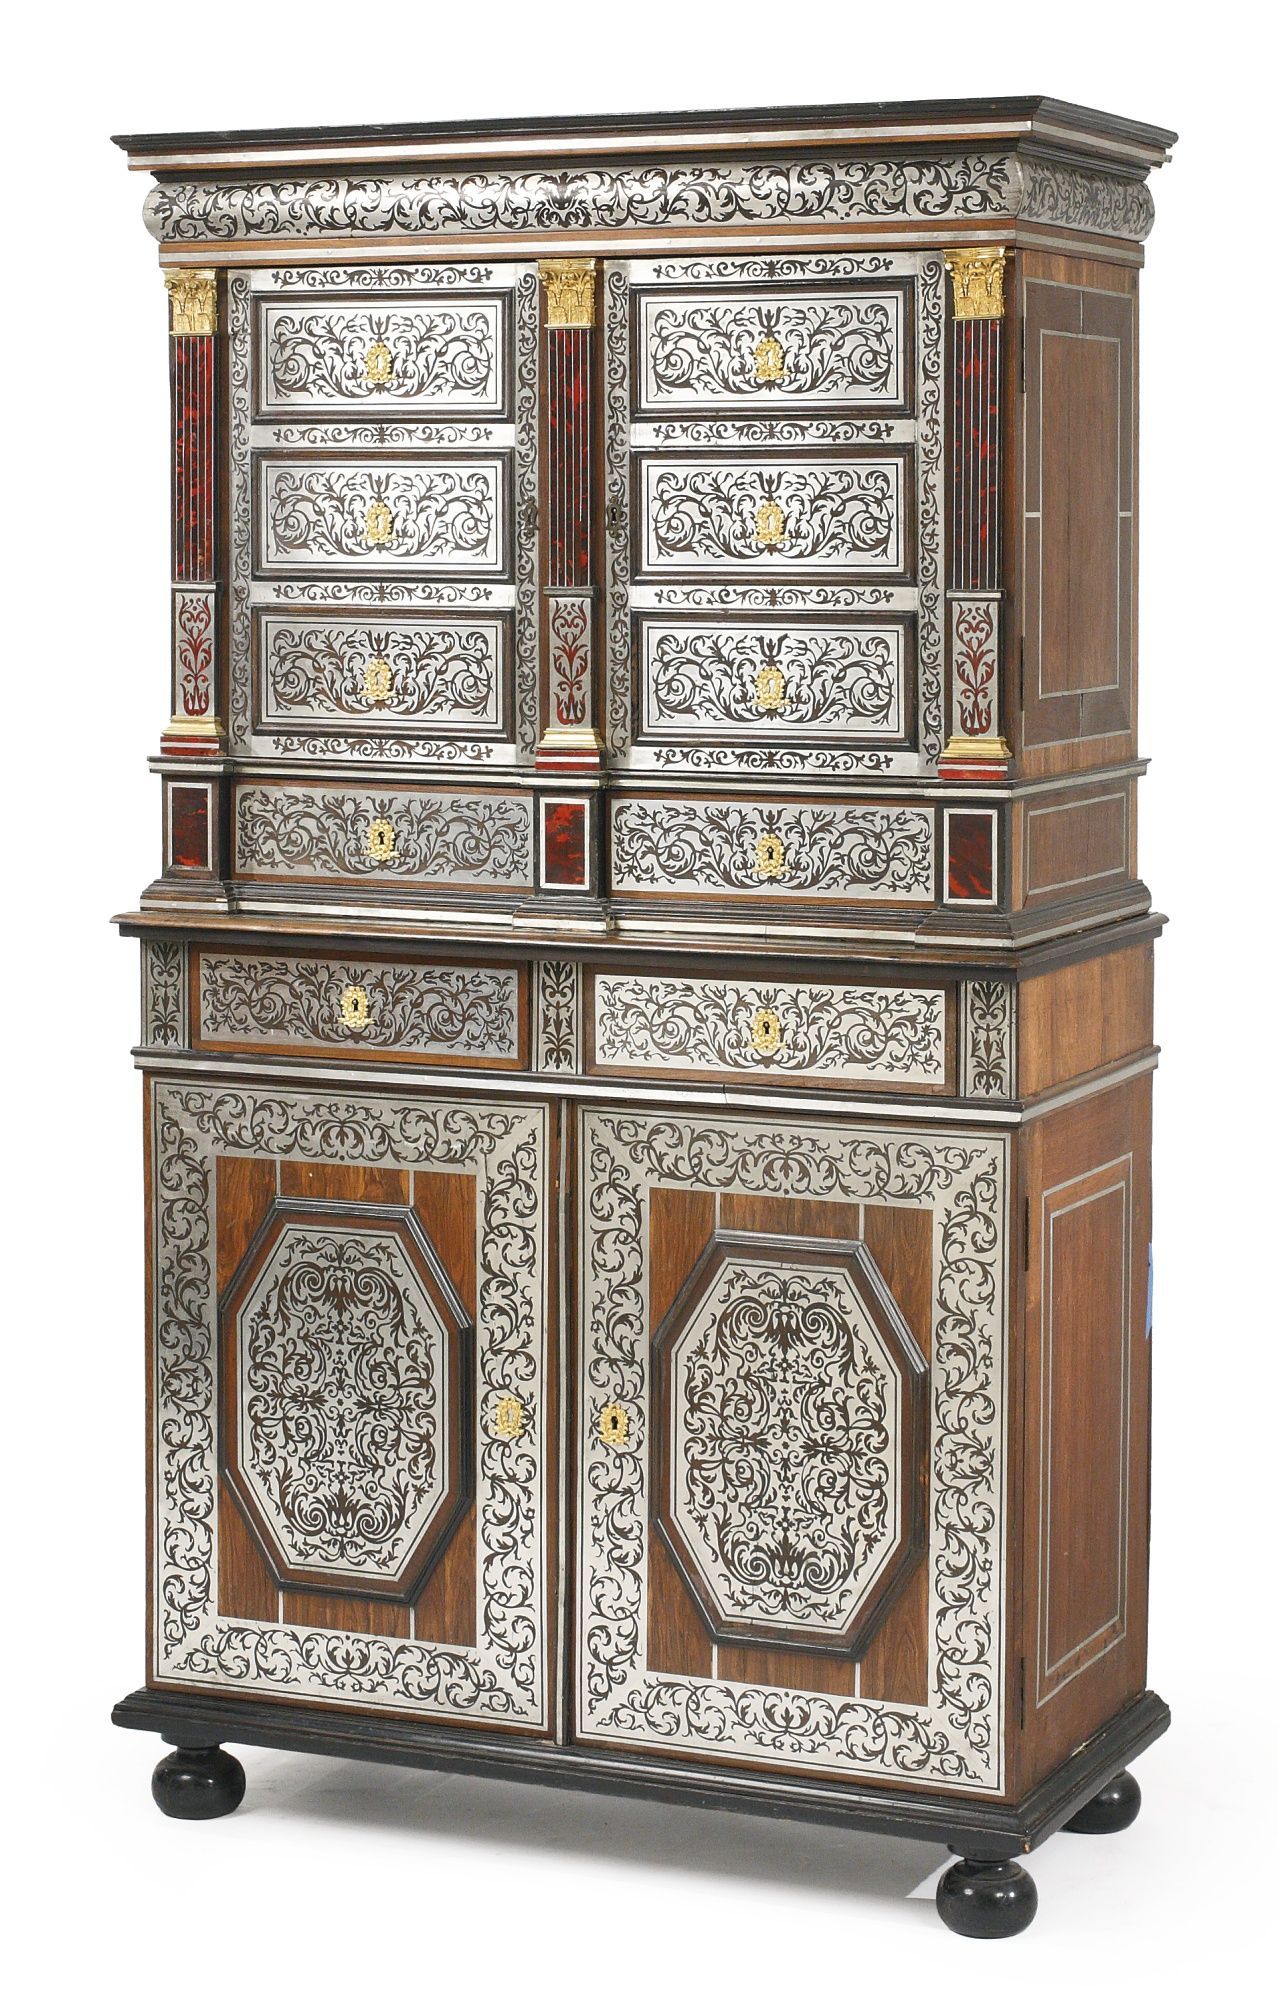 a louis xiv ormolu mounted pewter and tortoiseshell inlaid kingwood and ebony cabinet en armoire. Black Bedroom Furniture Sets. Home Design Ideas